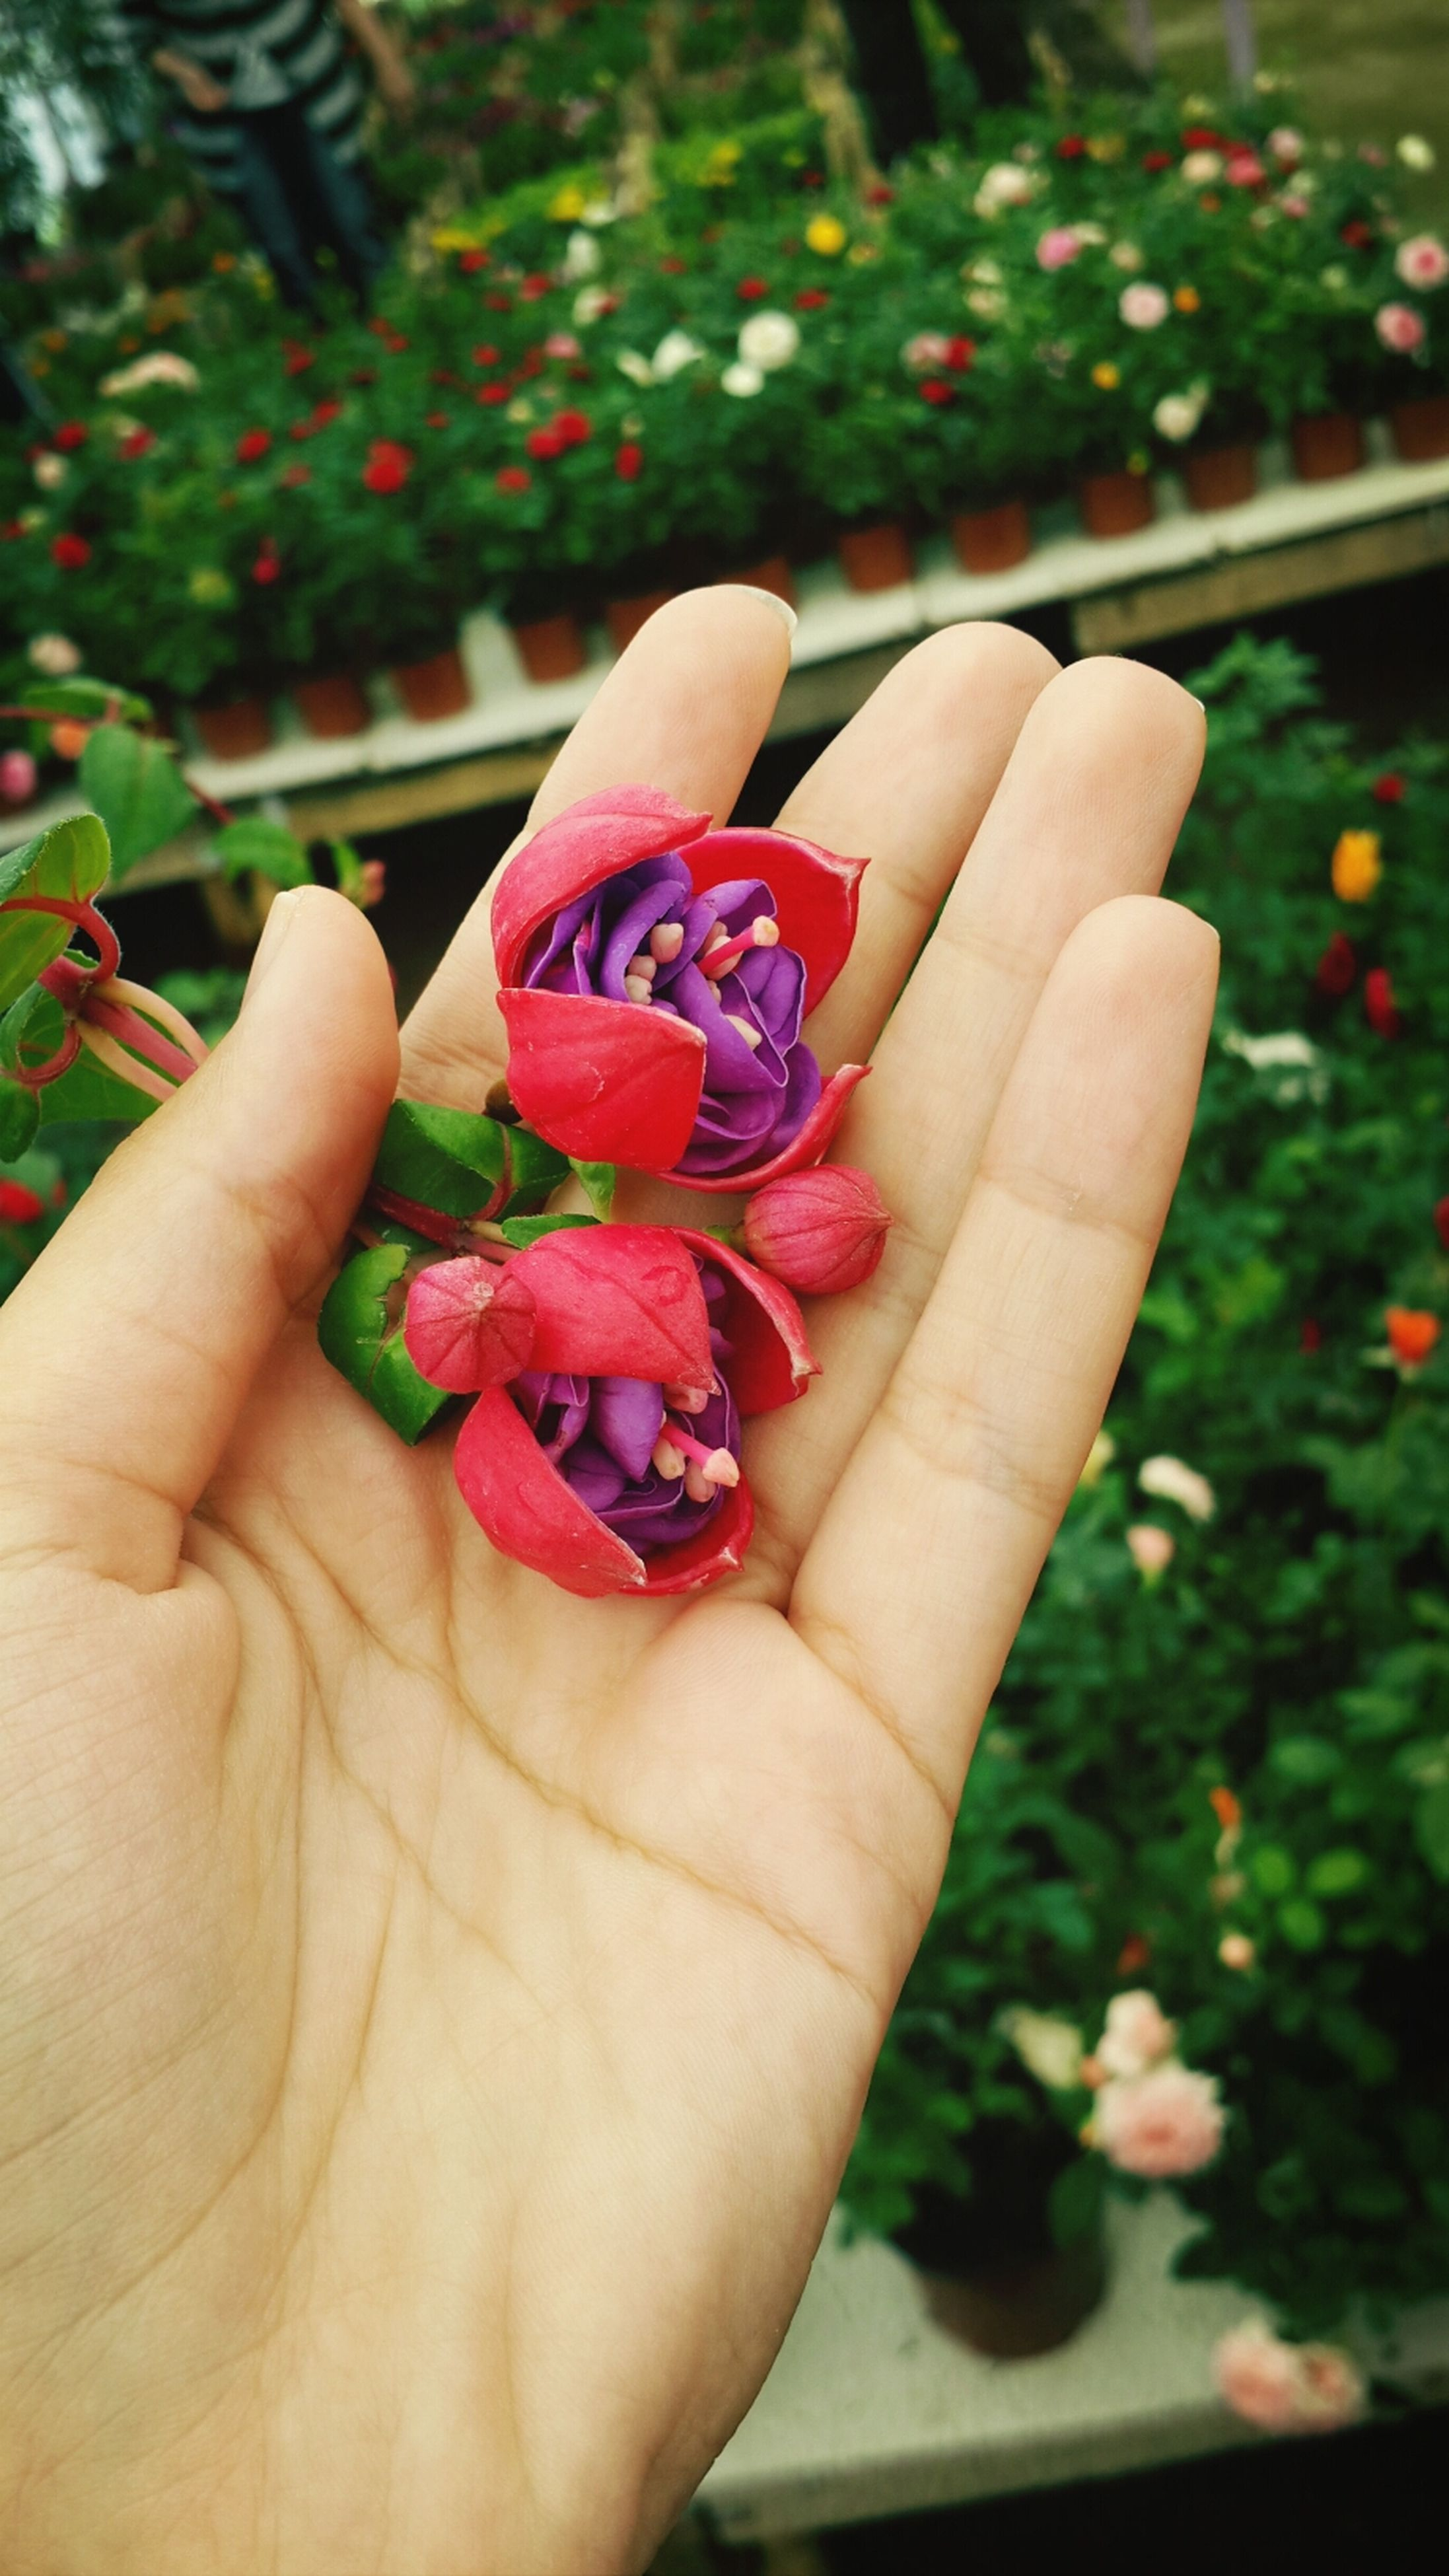 person, holding, human finger, part of, cropped, freshness, unrecognizable person, flower, personal perspective, close-up, focus on foreground, red, showing, fruit, lifestyles, palm, fragility